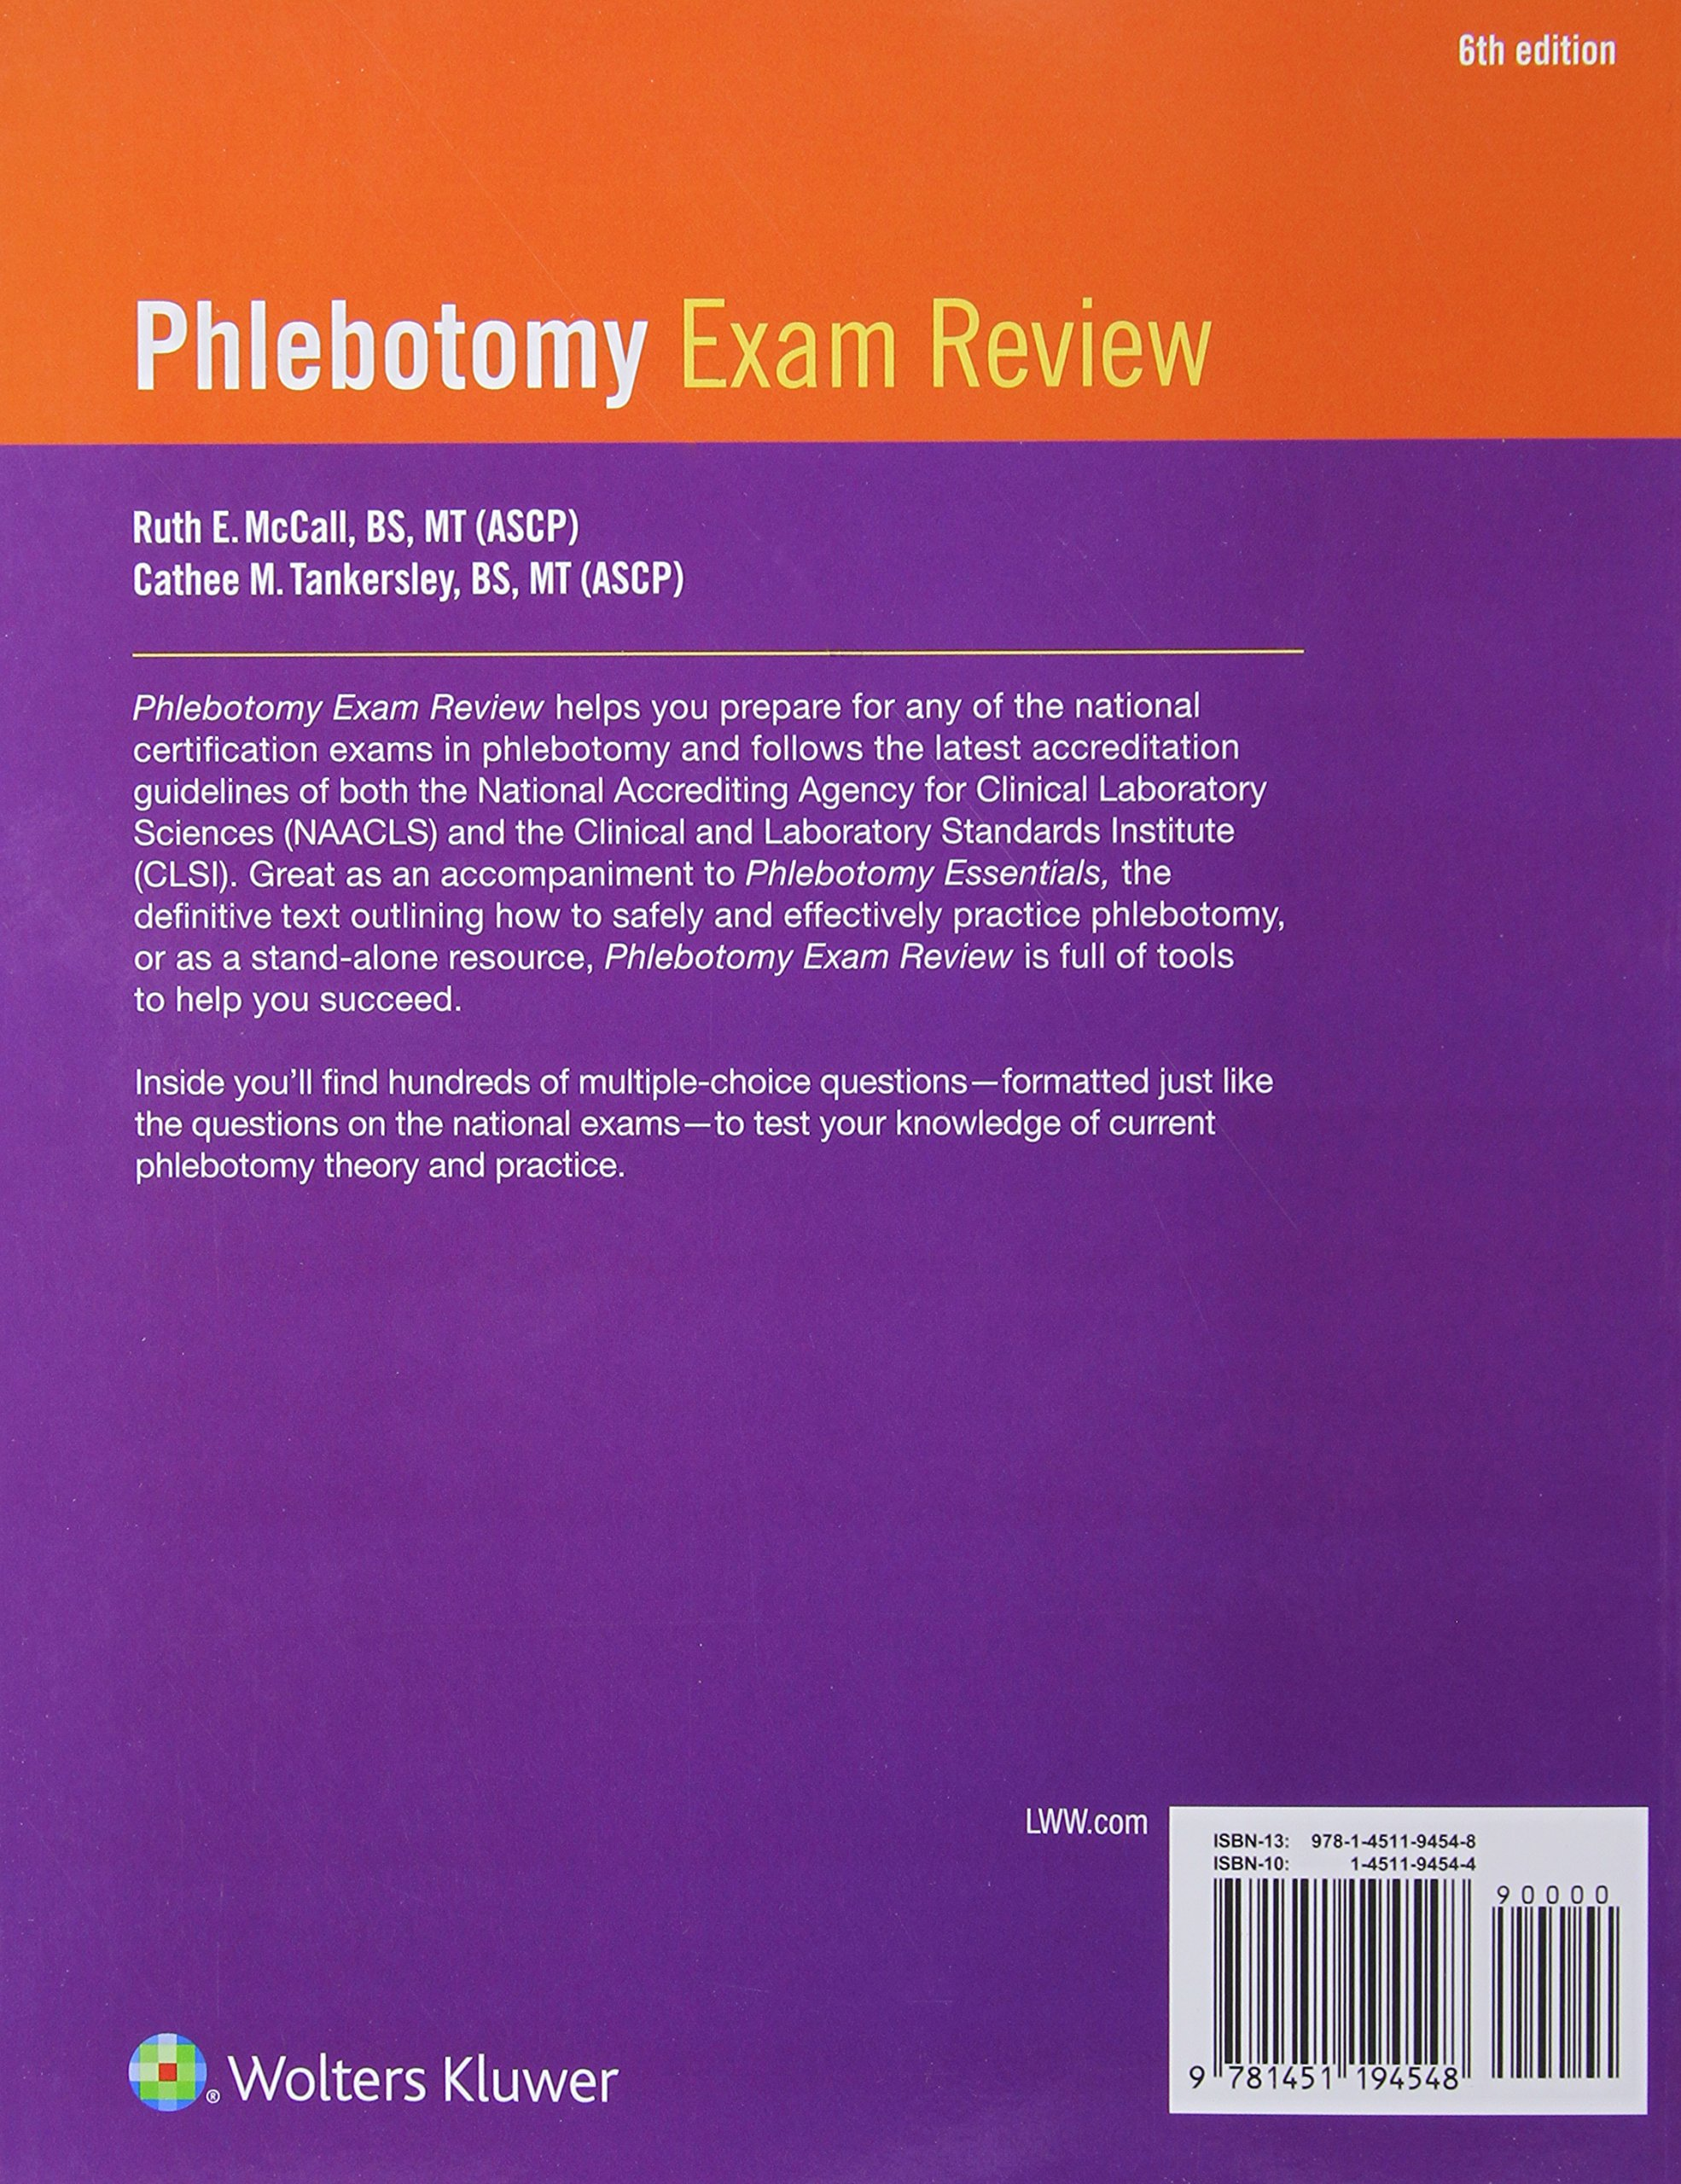 Buy phlebotomy essentials phlebotomy exam review book online at buy phlebotomy essentials phlebotomy exam review book online at low prices in india phlebotomy essentials phlebotomy exam review reviews ratings 1betcityfo Gallery